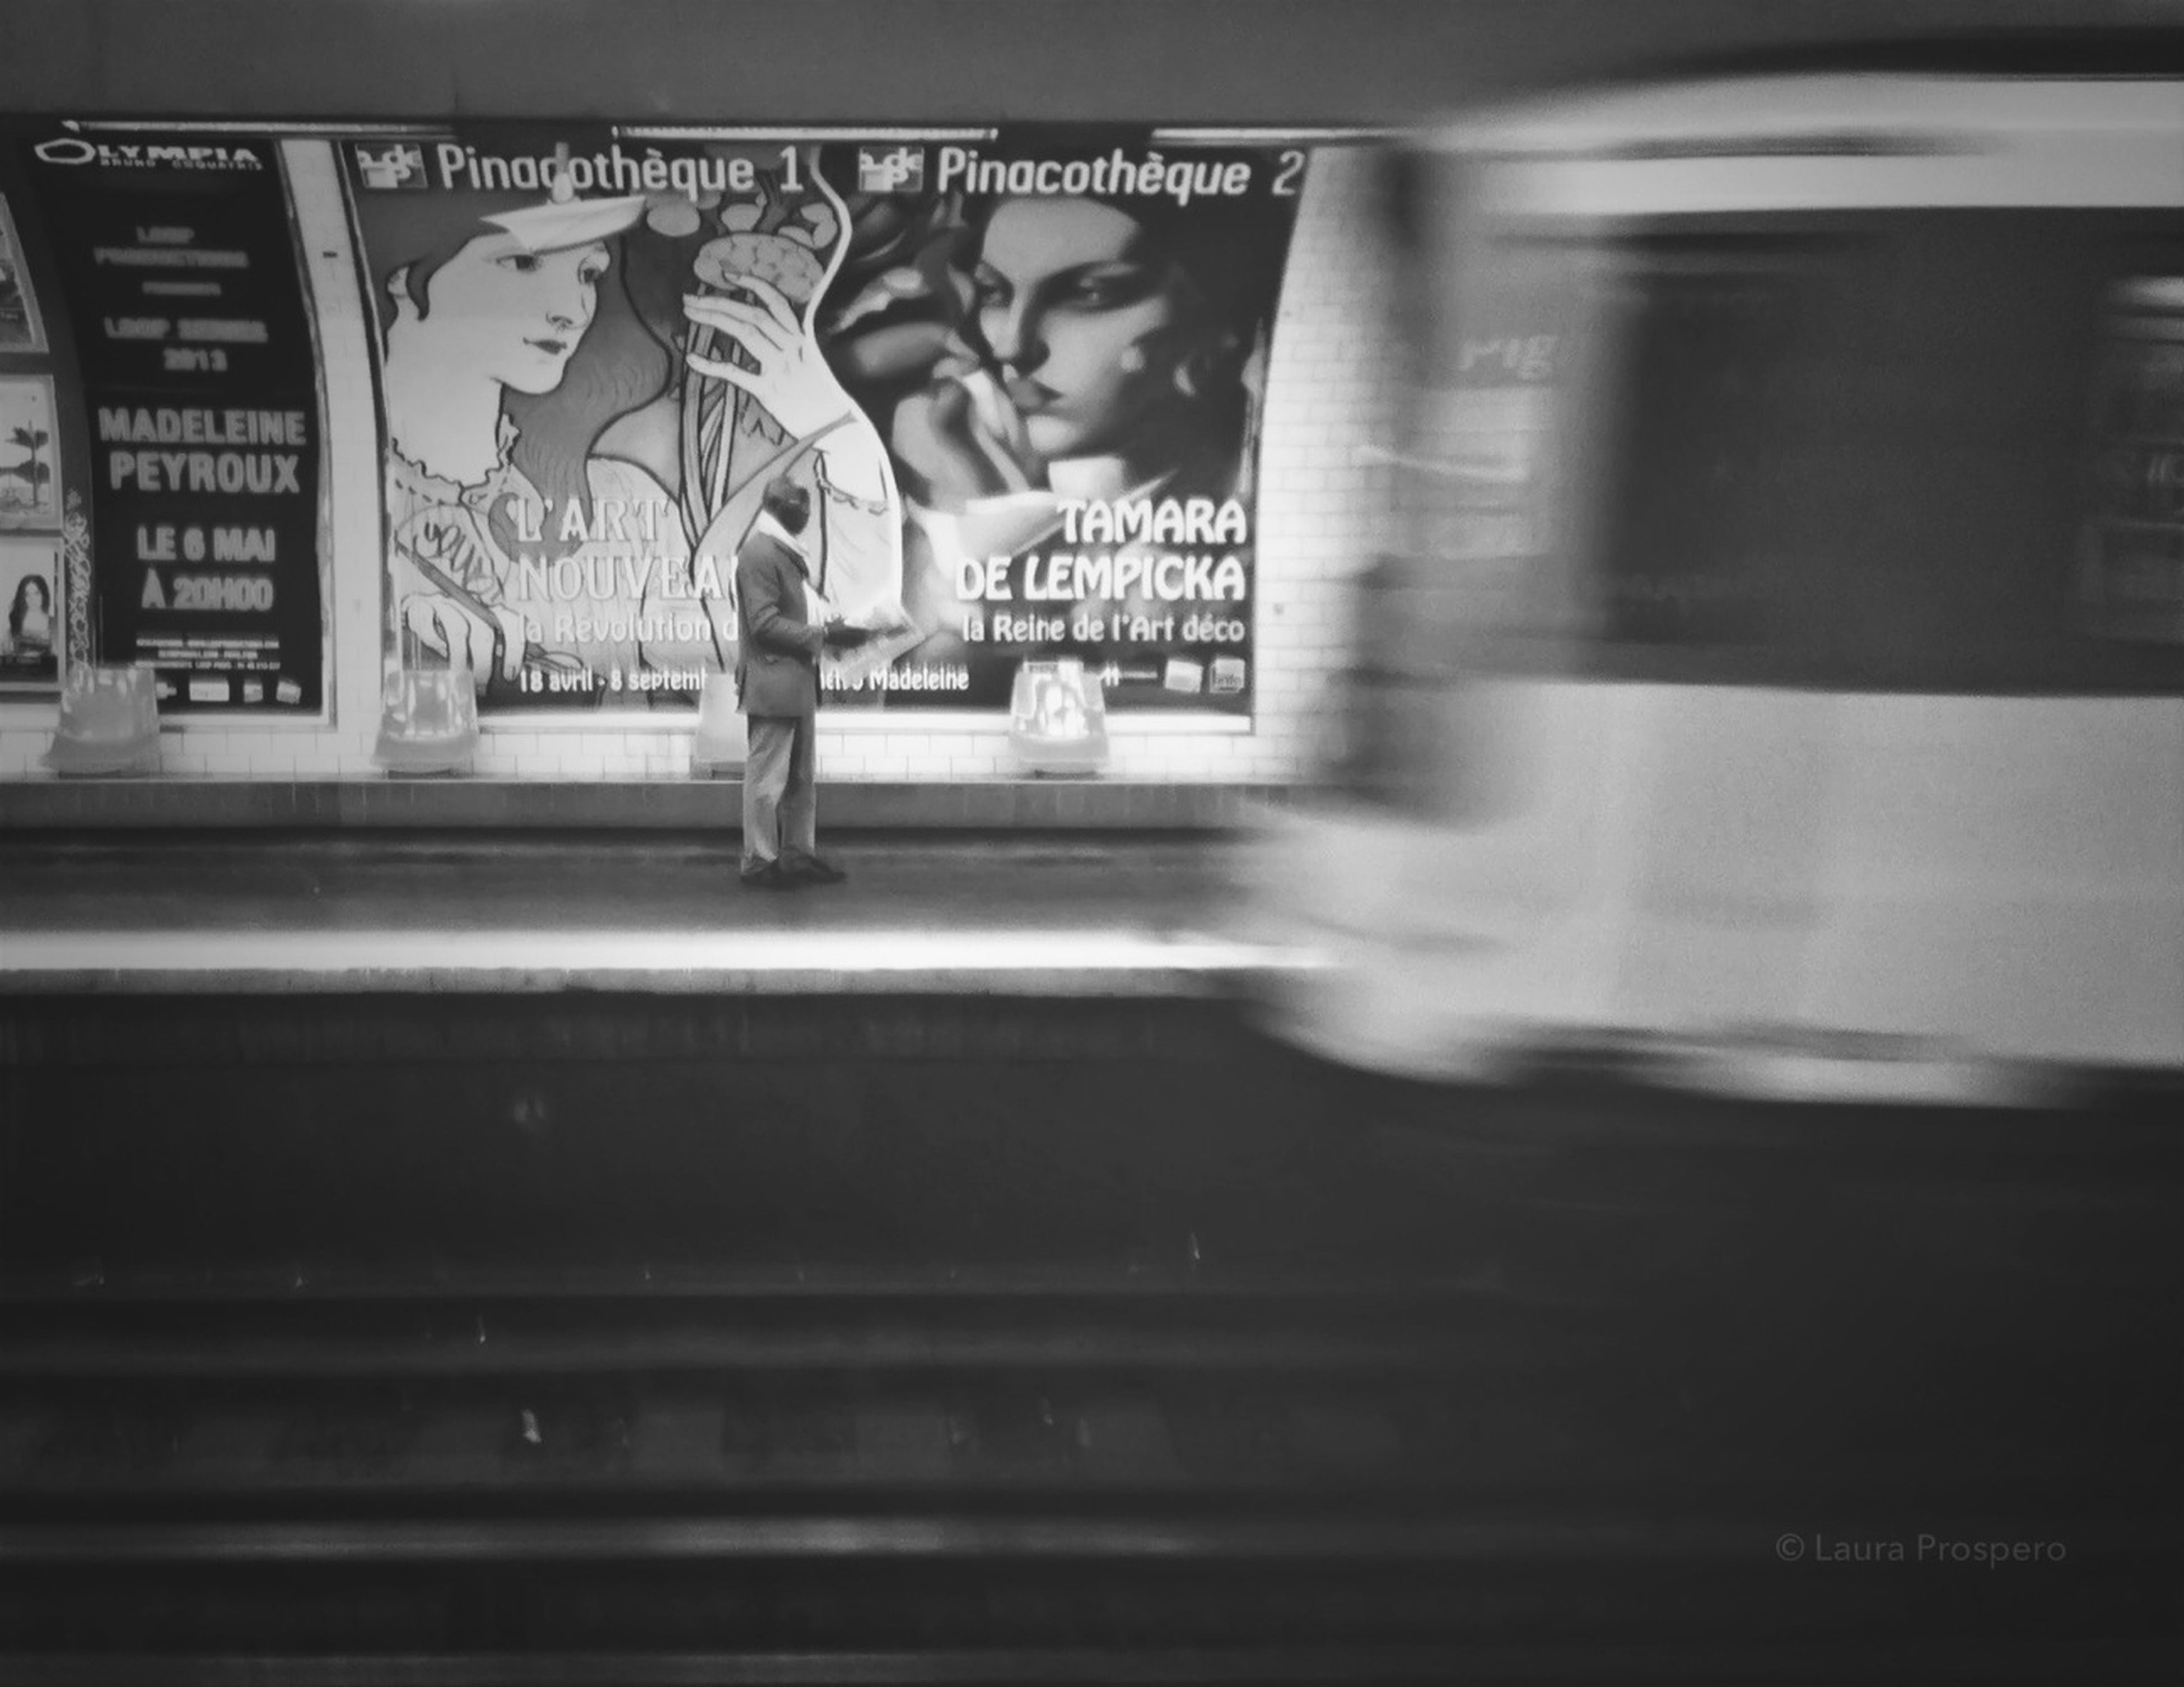 indoors, illuminated, architecture, built structure, tunnel, subway, transportation, railroad station, subway station, text, full length, blurred motion, men, graffiti, steps, wall - building feature, public transportation, ceiling